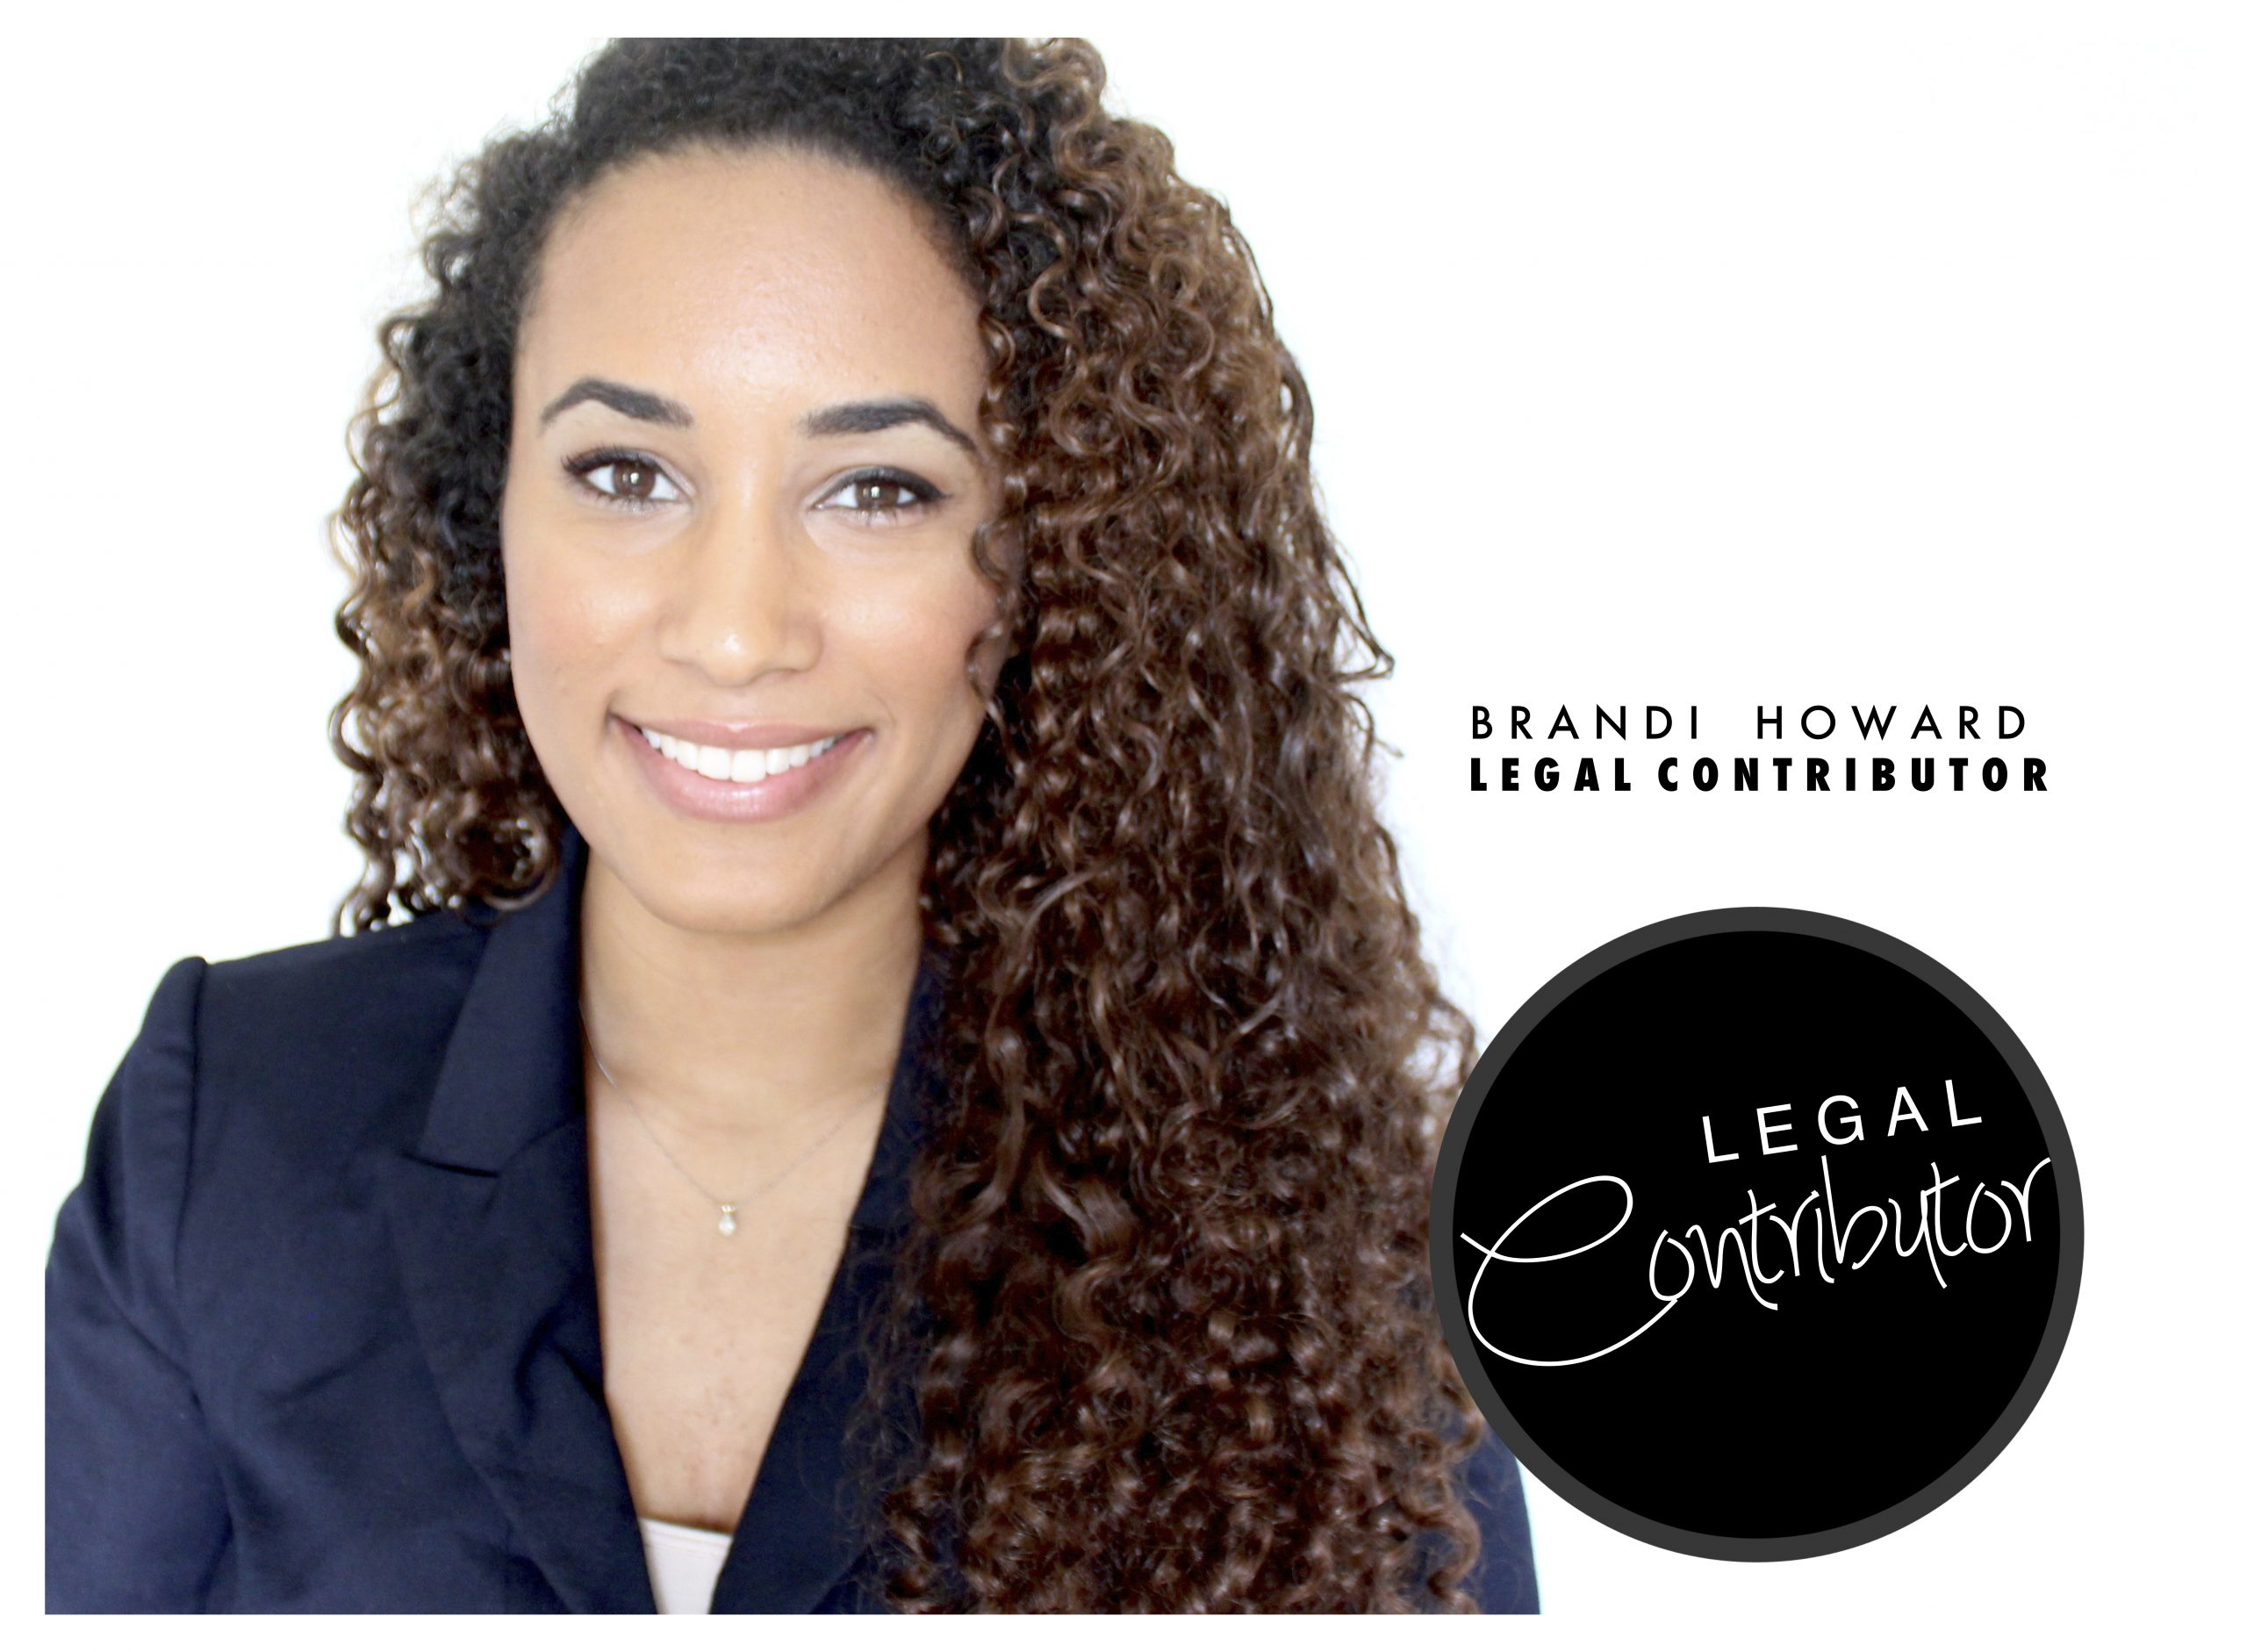 Law Contributor Brandi Howard